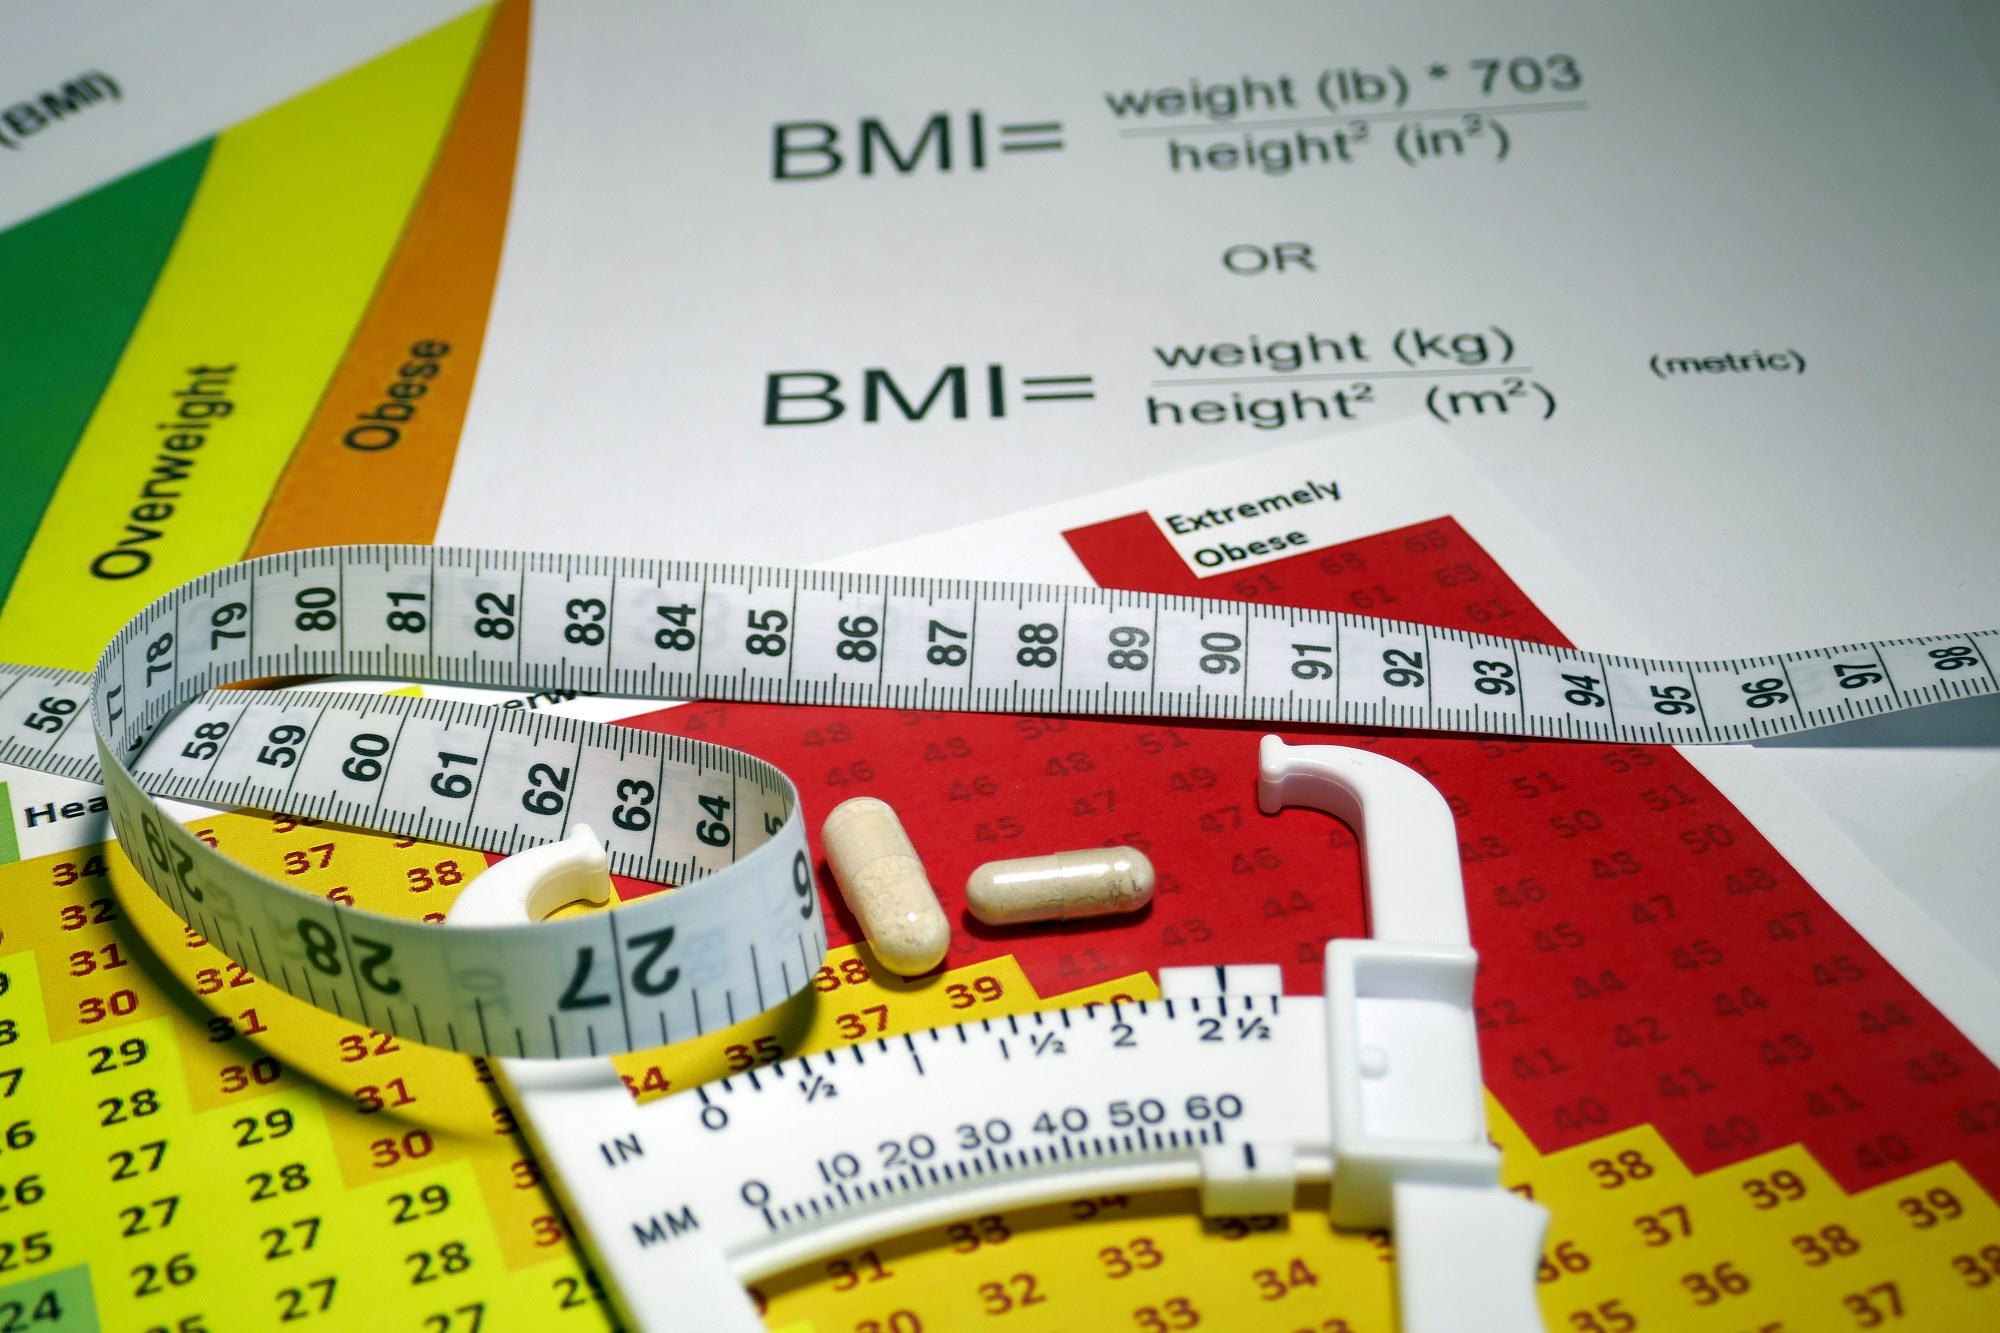 Genetic Analysis Shows Higher BMI May Increase Risk for Depression